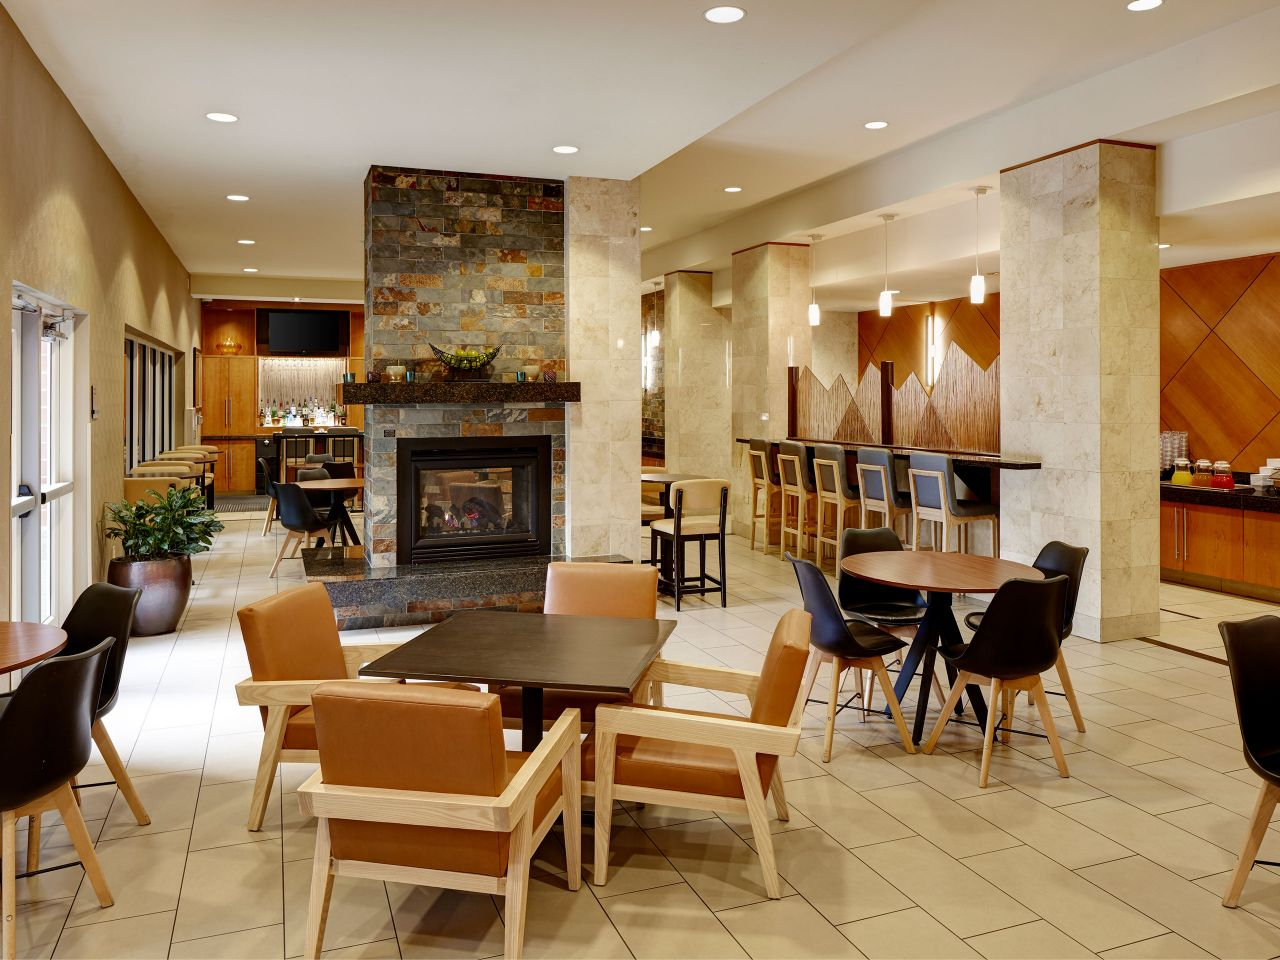 Hyatt House bistro seating